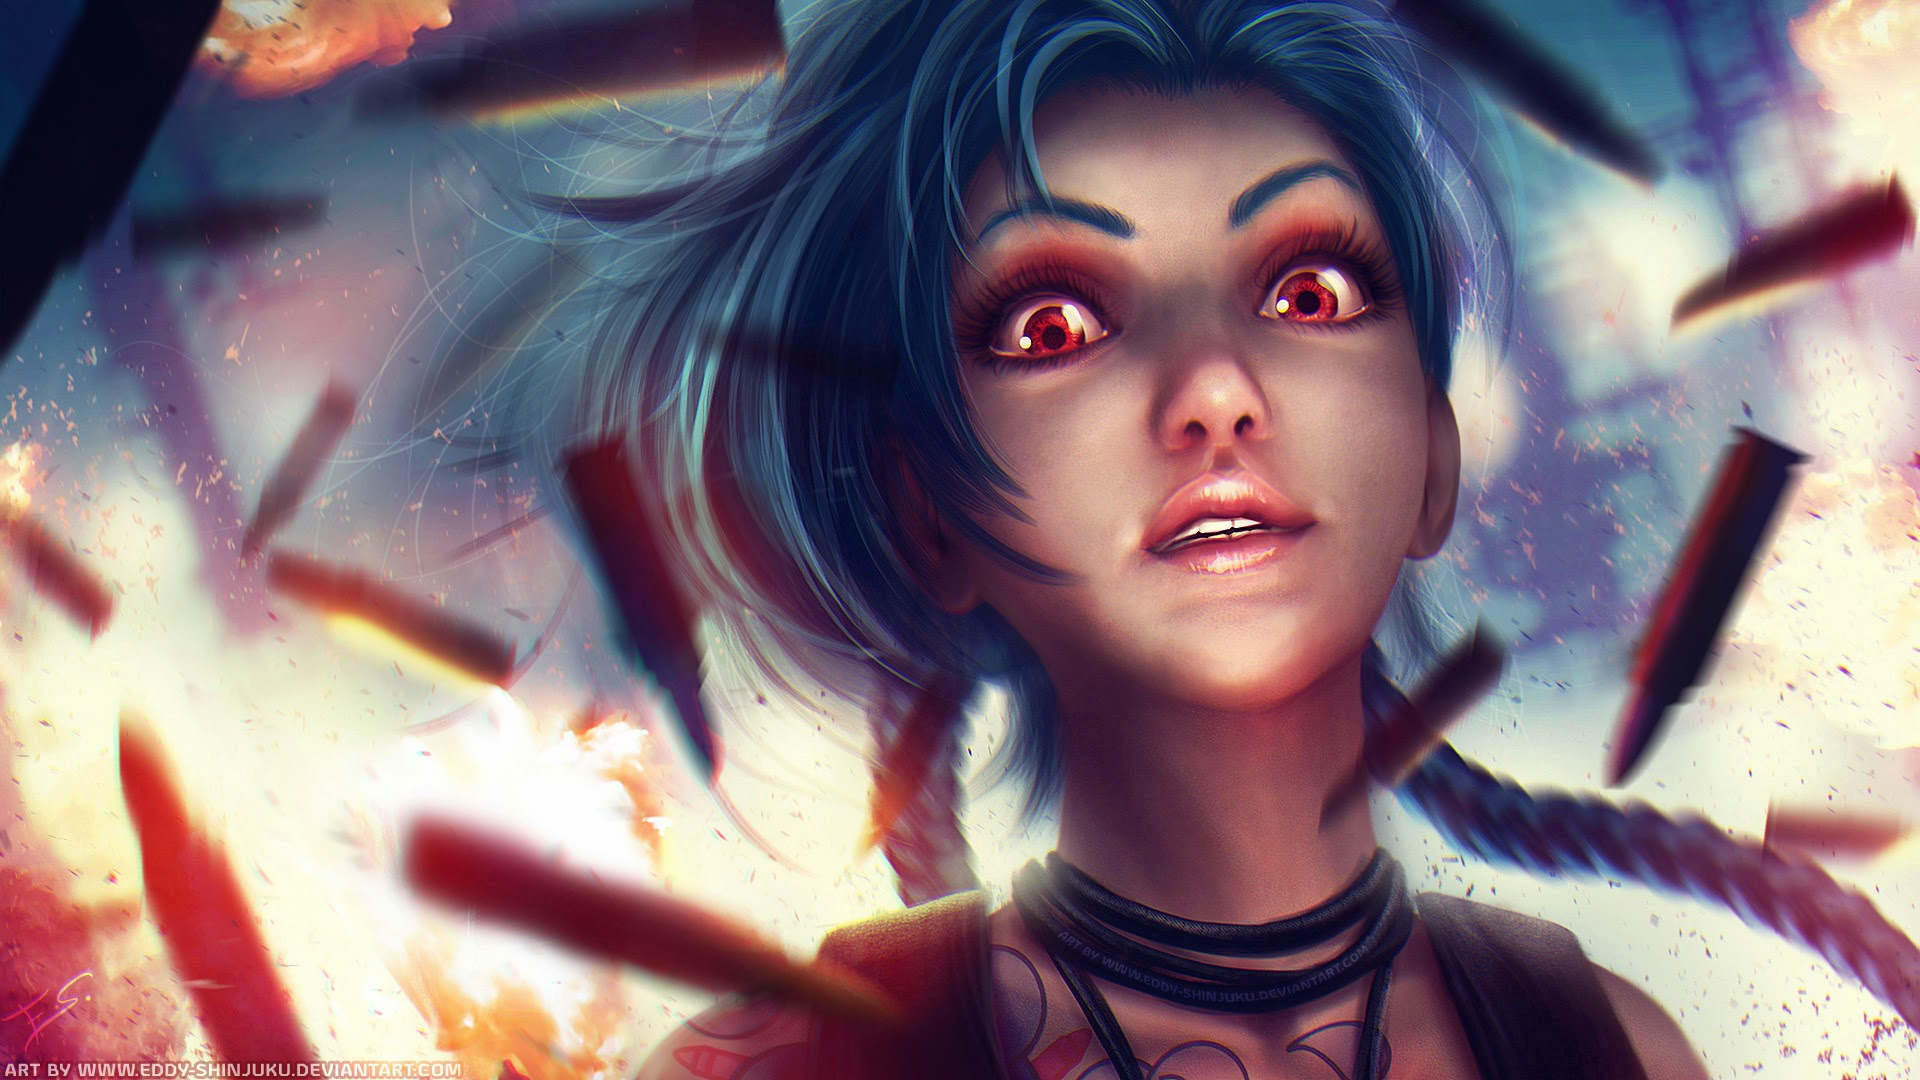 Jinx Wallpapers jinx league of legends hd wallpaper lol girl champion x w